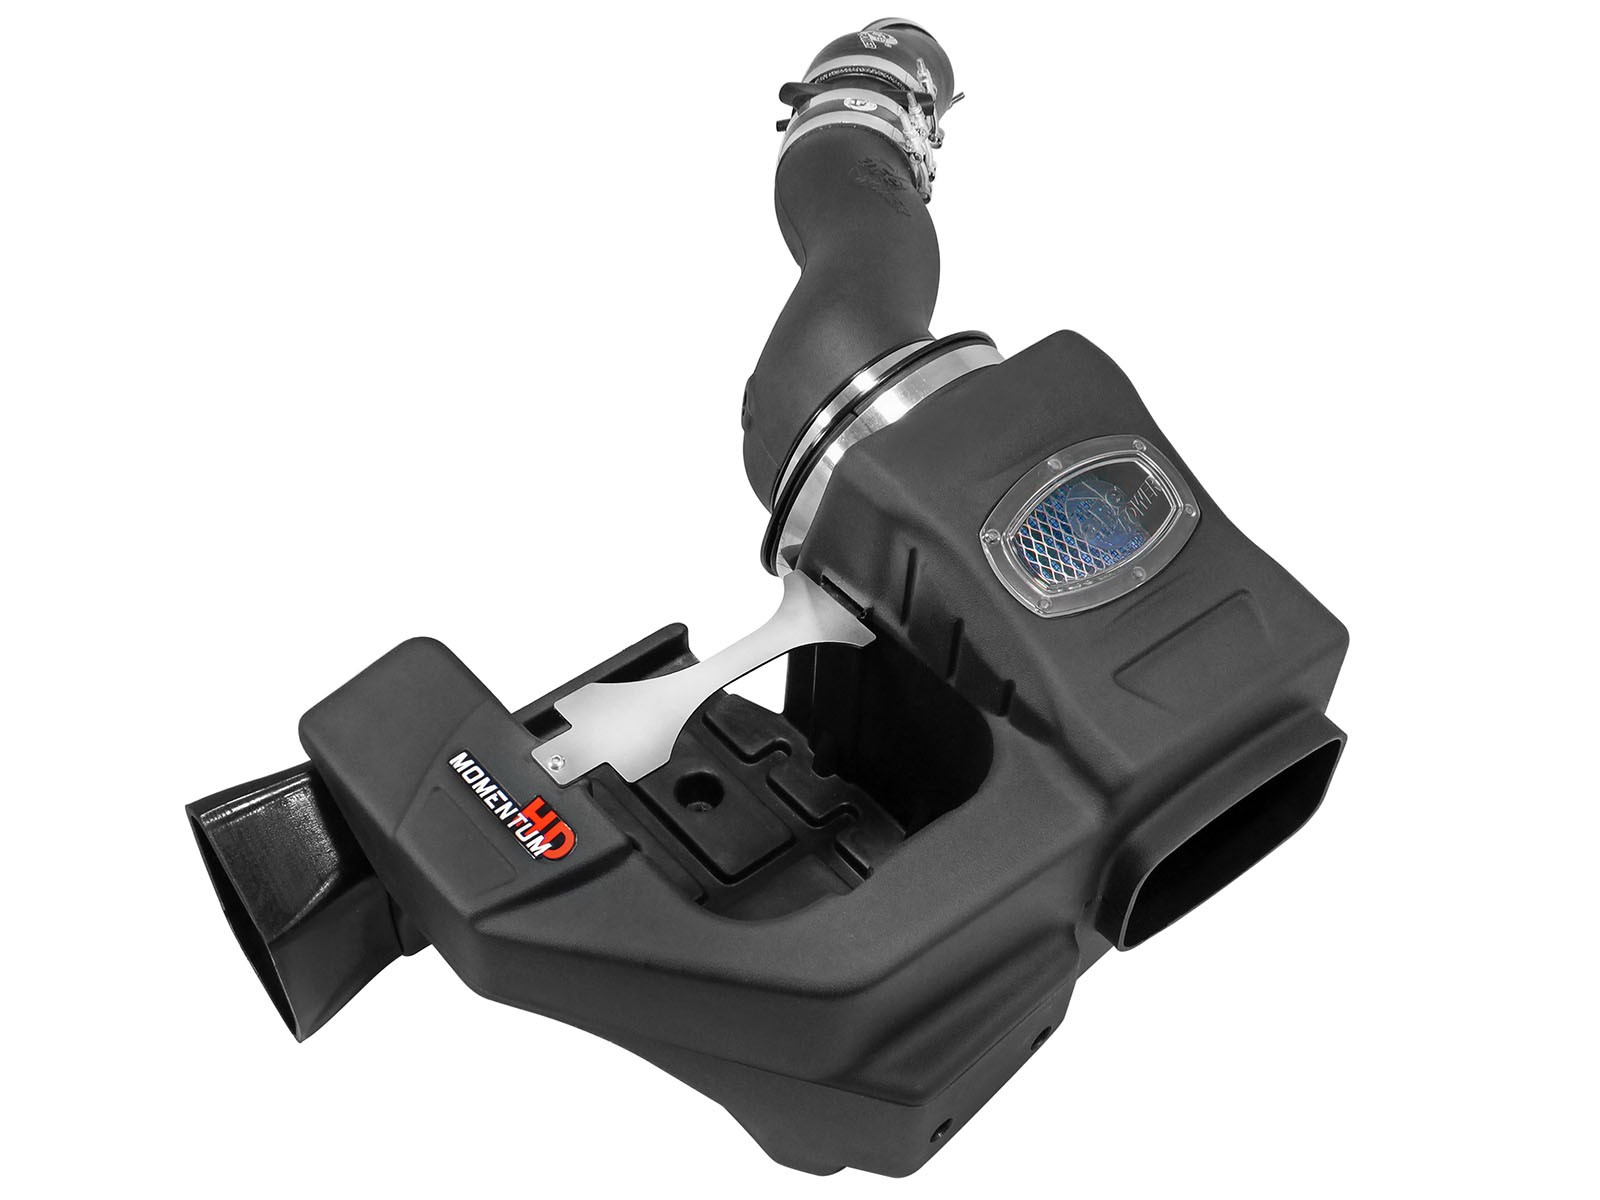 Momentum Hd Pro 10r Cold Air Intake System Afe Power Fuel Filter On 99 F250 Powerstroke Adds Up To 80 Flow Increase 17 Hp Horsepower 44 Lbs X Ft Torque Max Gains Ford Diesel Trucks 03